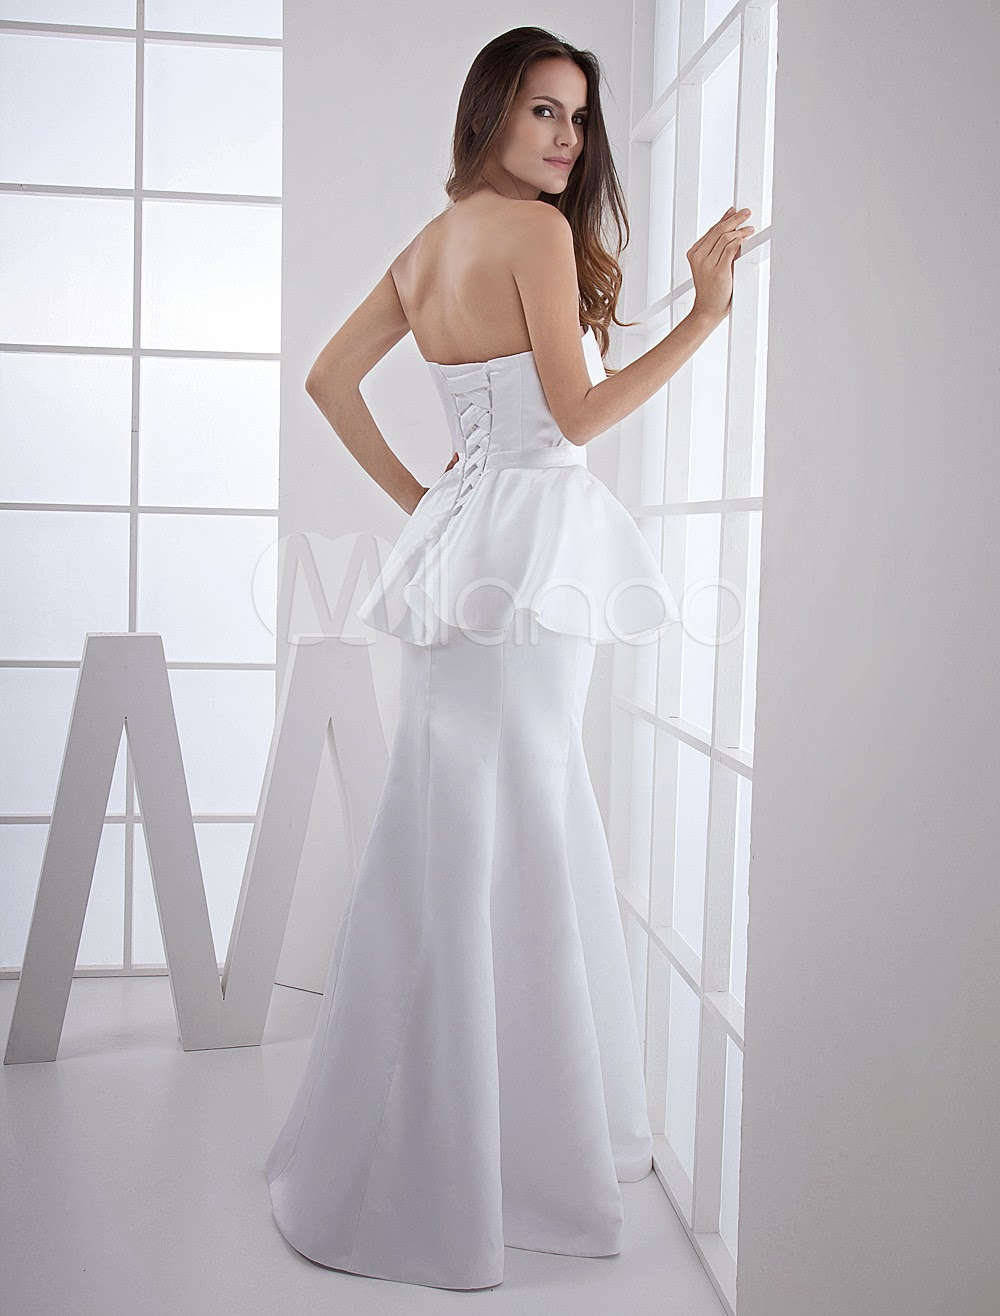 China Wholesale Dresses - White Satin Strapless Ladies Evening Dress